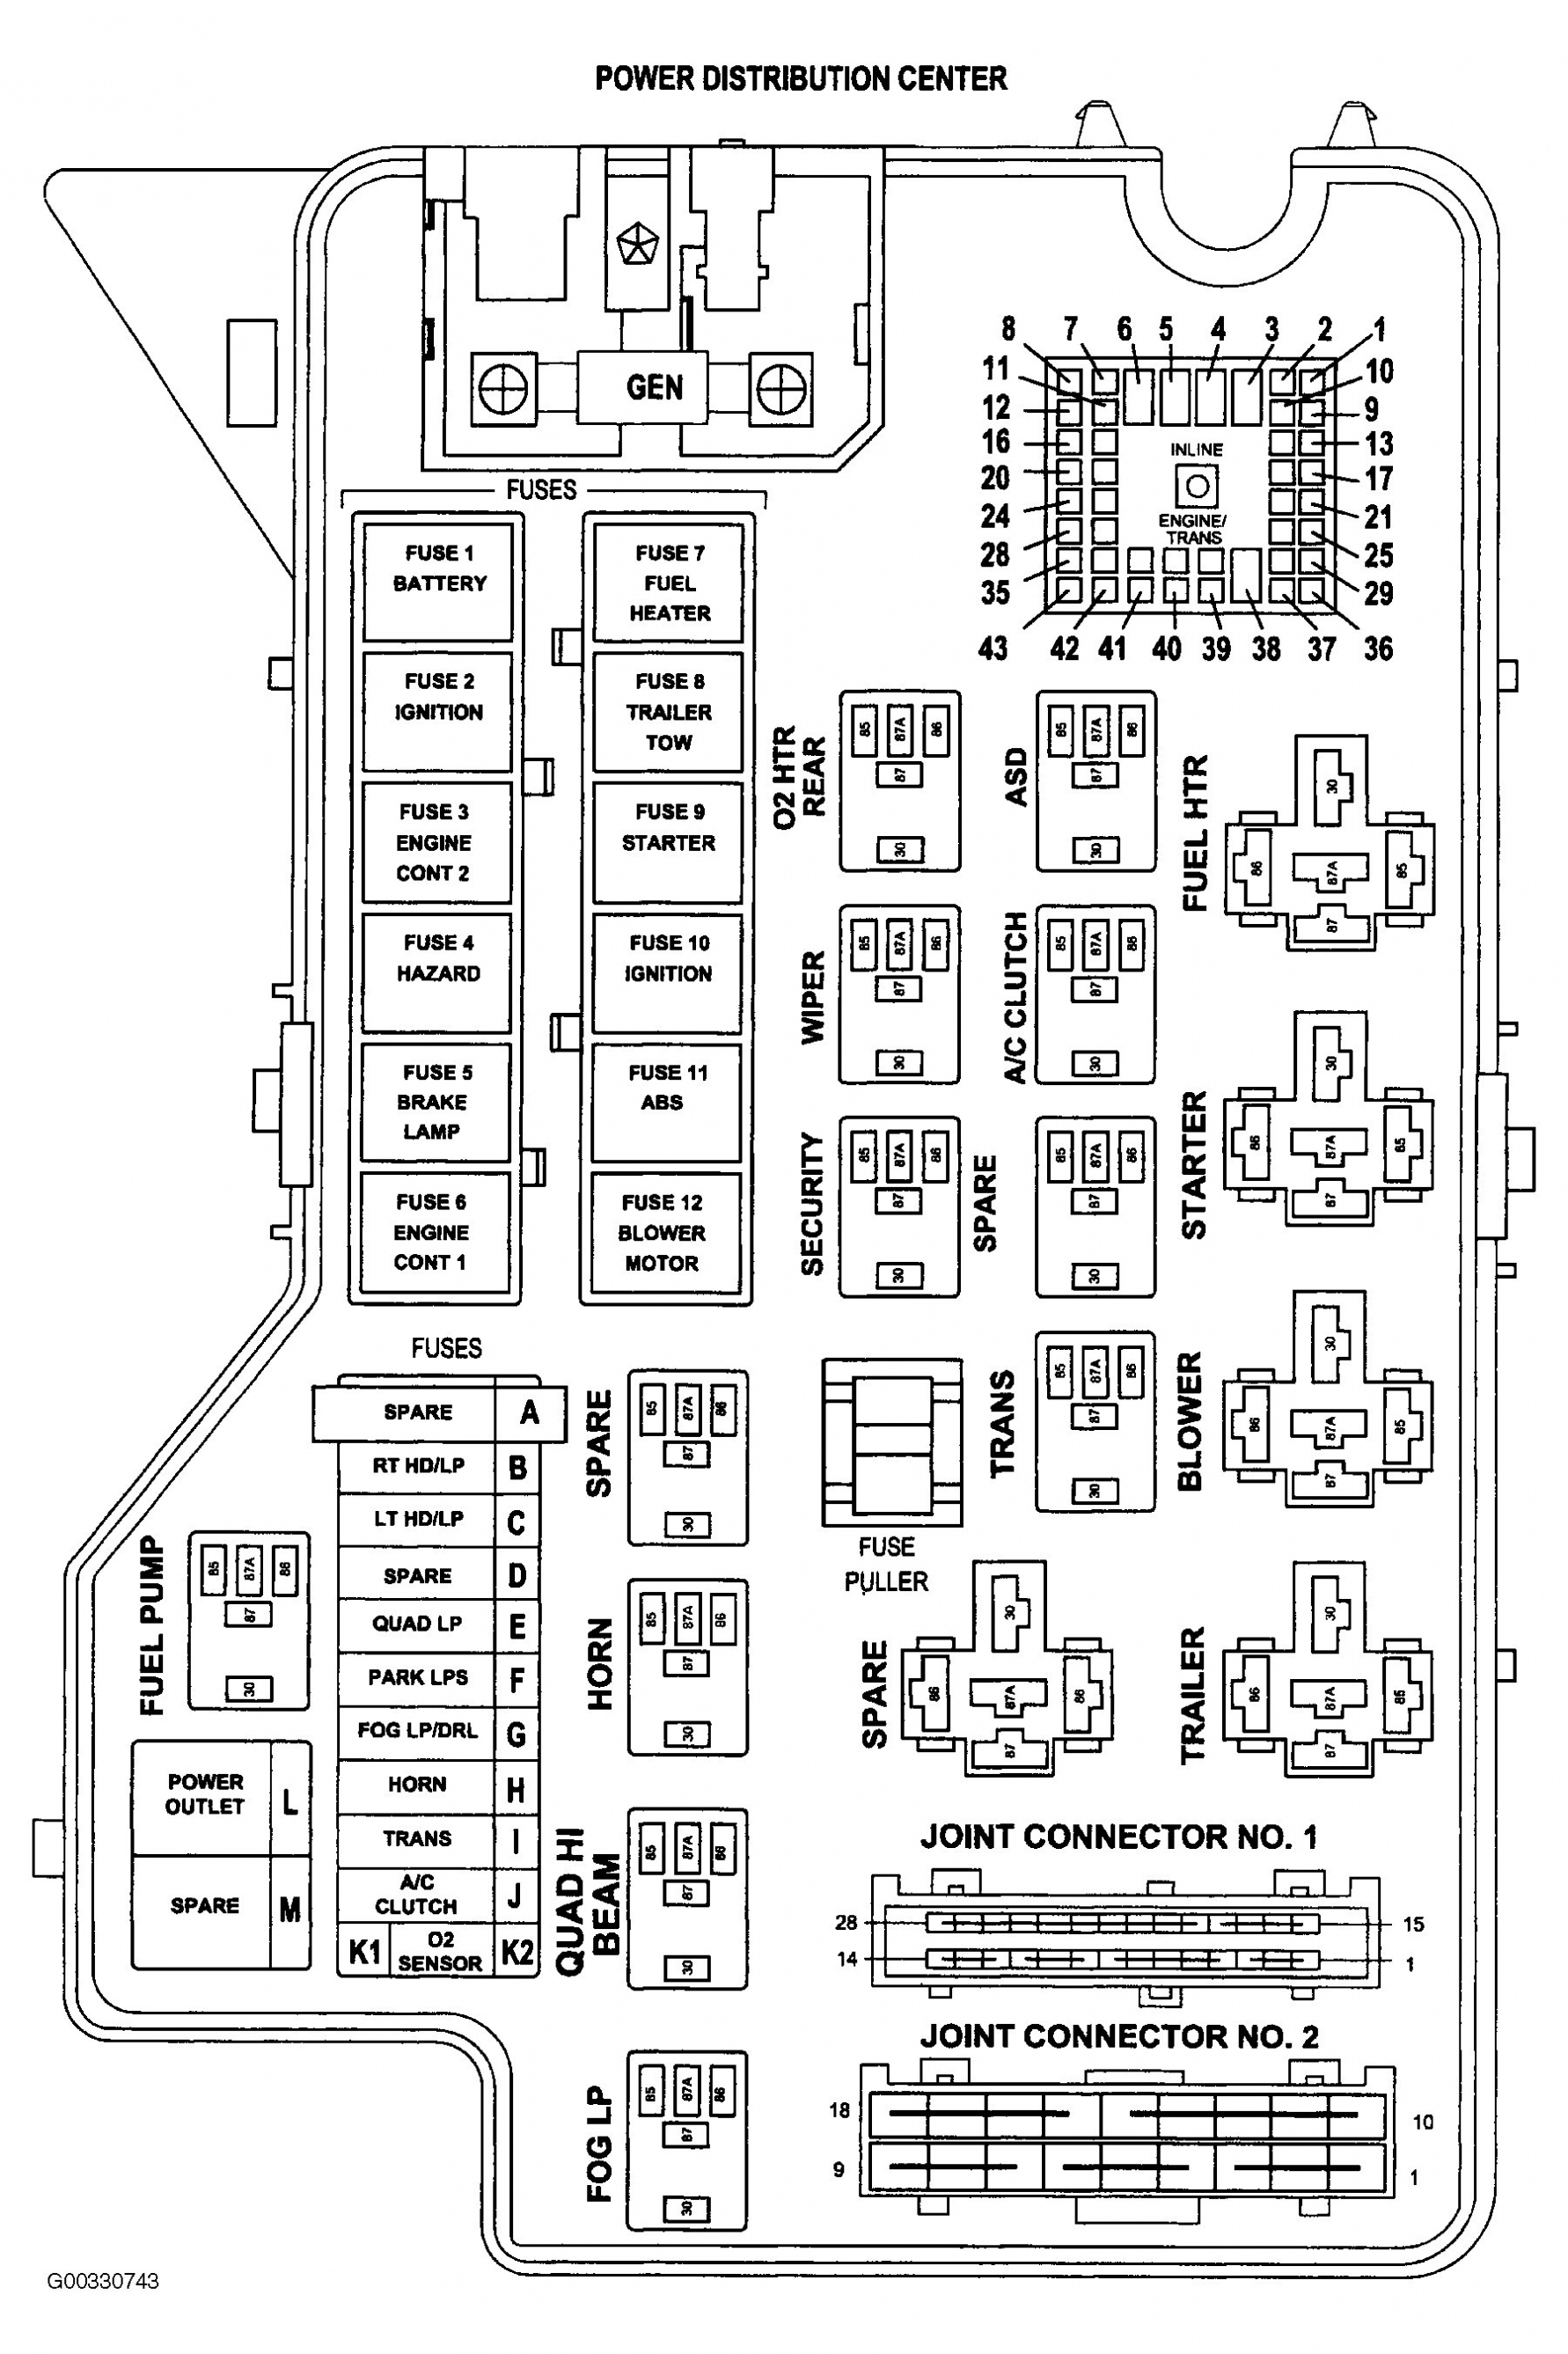 Ram 1500 Fuse Box - Wiring Diagram Data - 2004 Dodge Ram 1500 Wiring Diagram